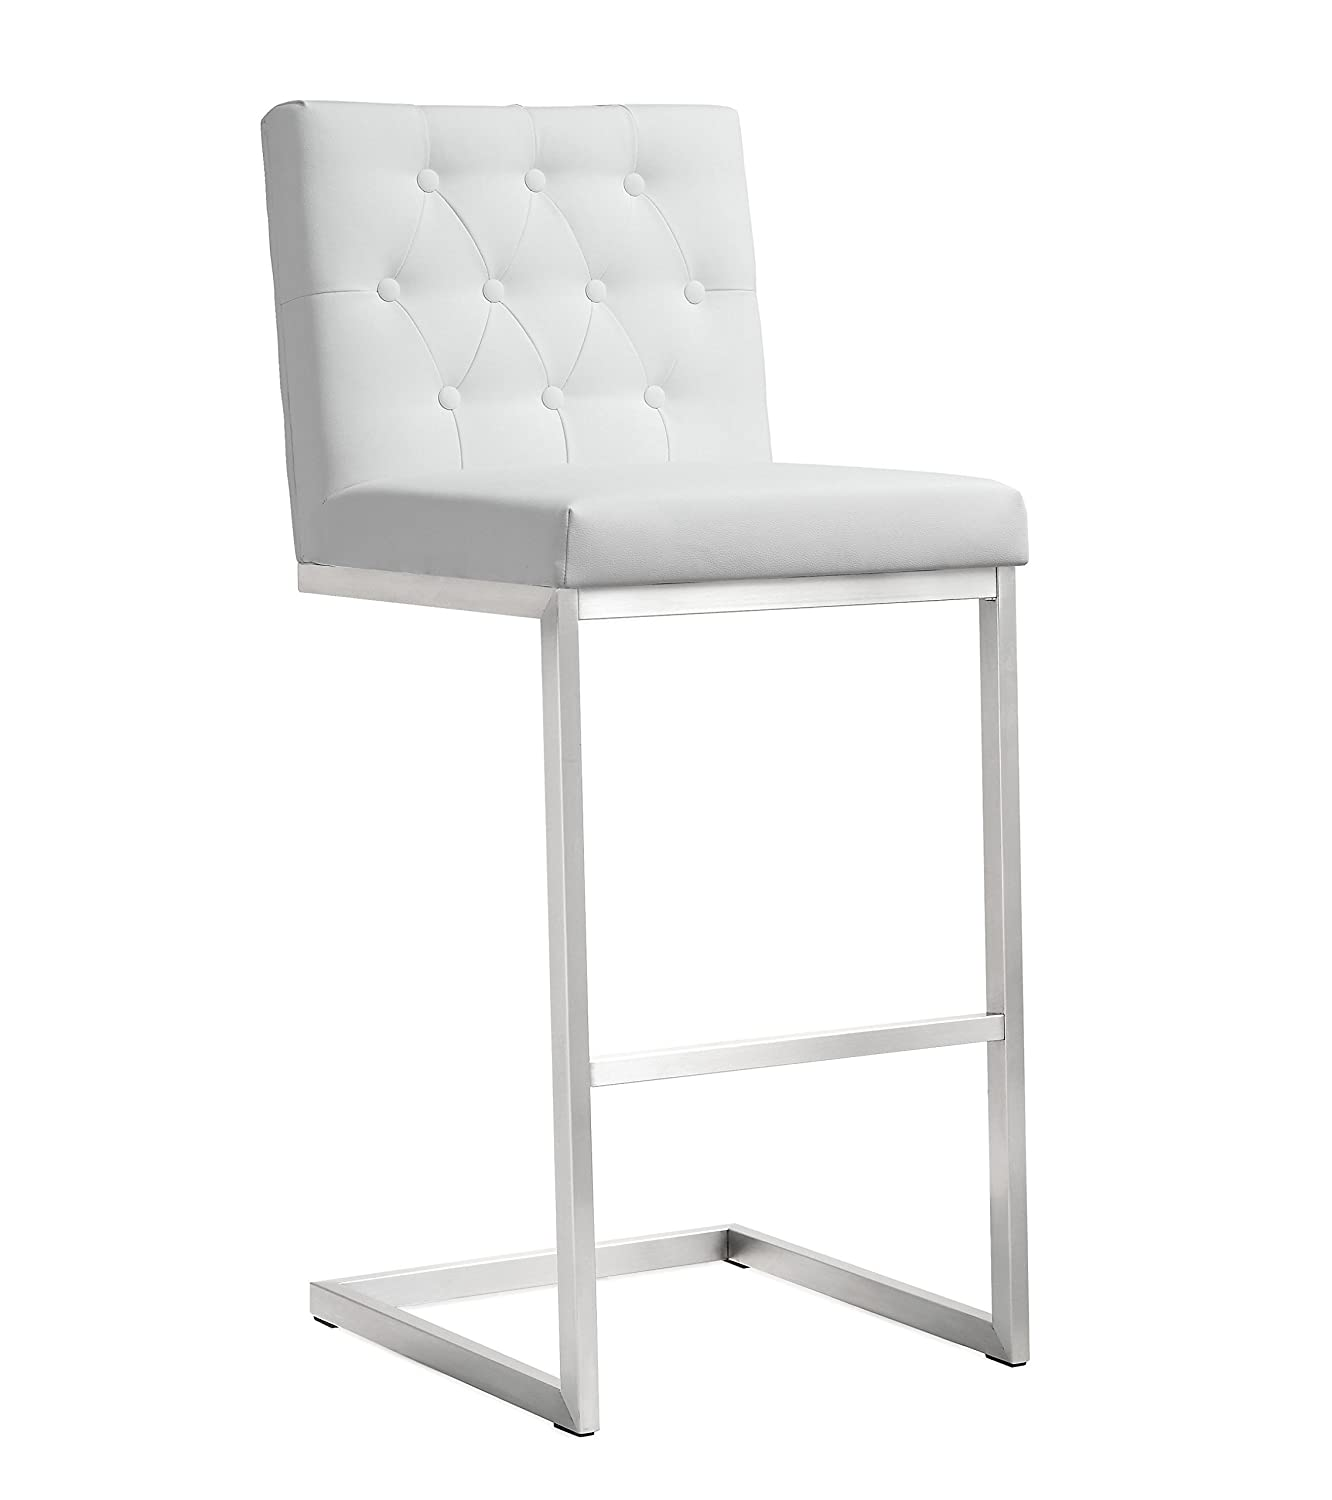 Tov Furniture The Helsinki Collection Modern Style Eco-Leather Upholstered Stainless Steel Barstool Set of 2 , White